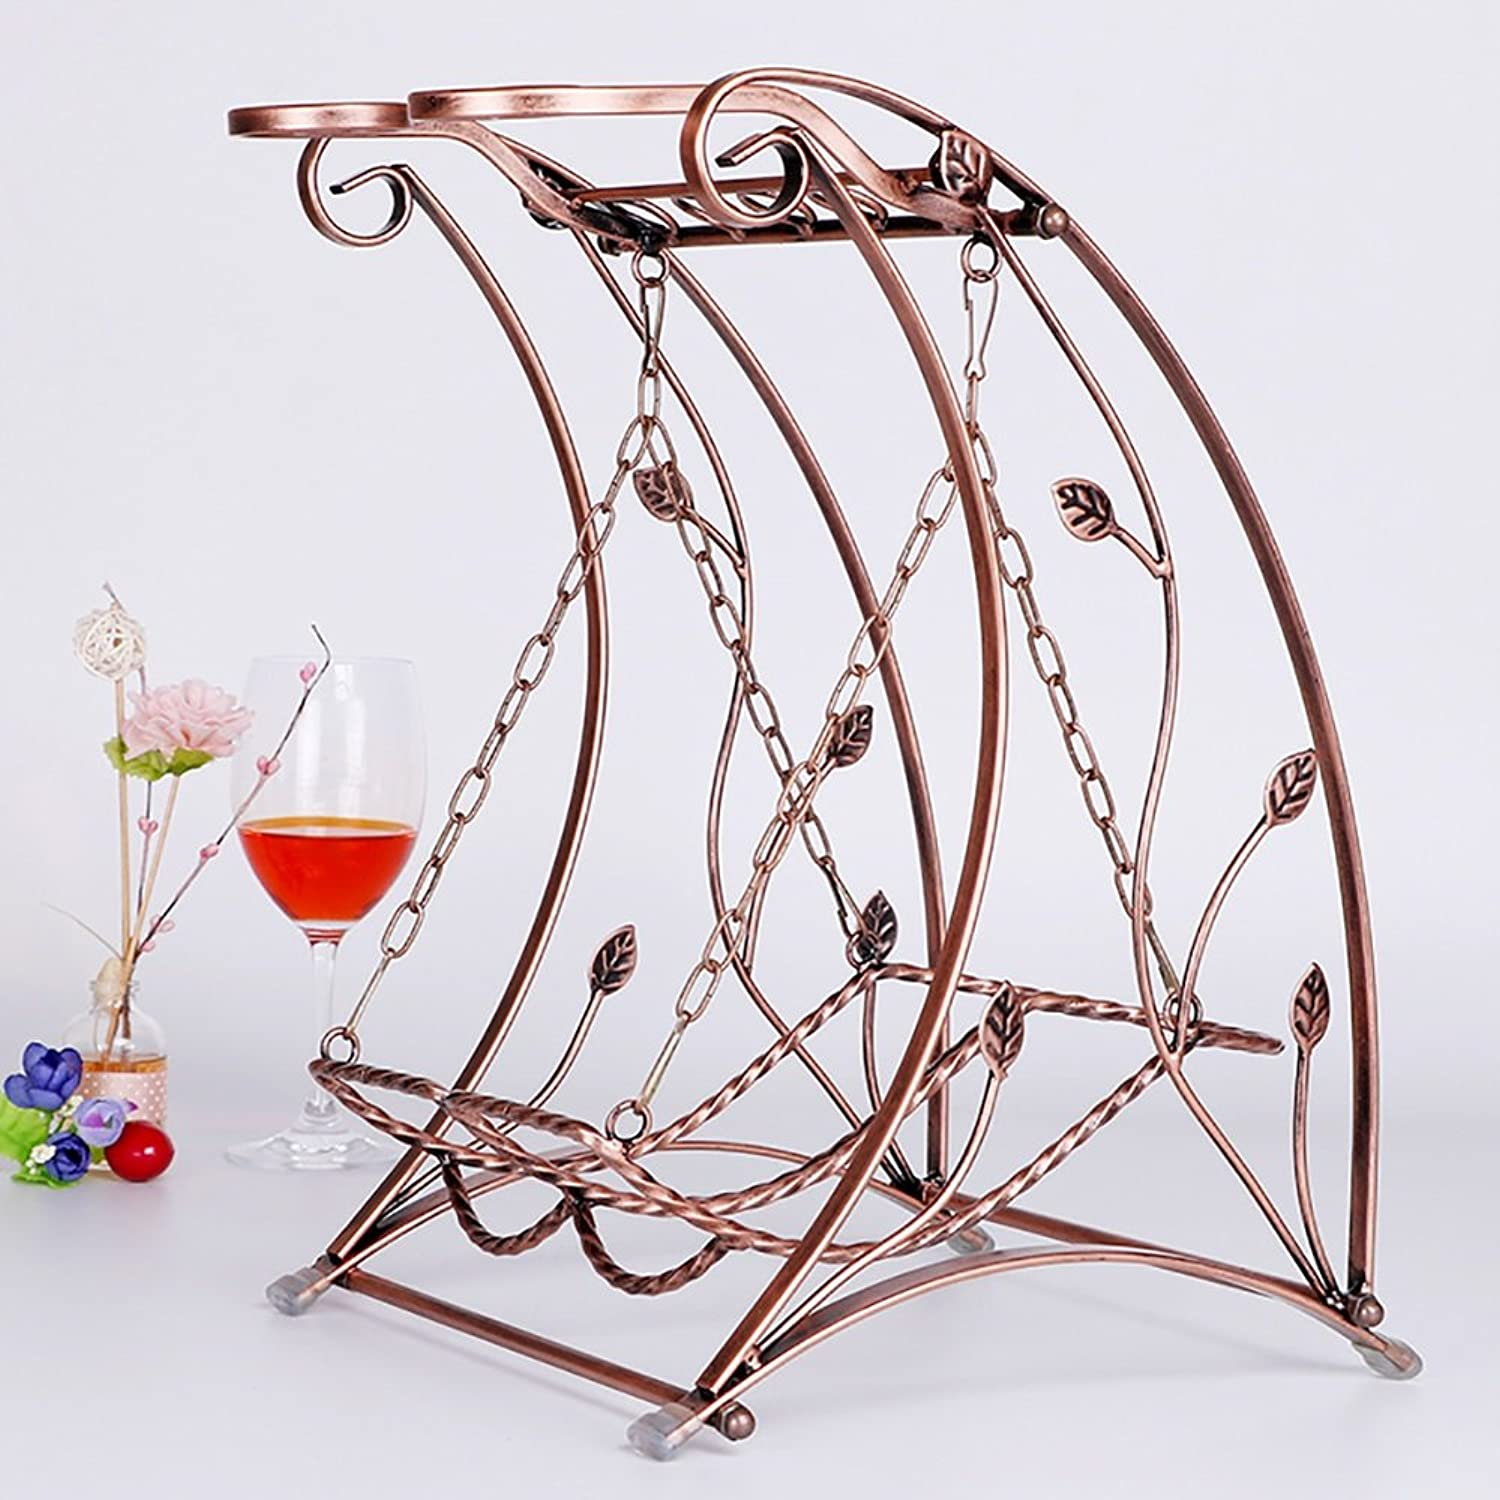 Swing Creative Wine Rack Stainless Steel Tabletop Wine Glass Rack Stand Hold 2 Wine Glass and 2 Bottles of Wine